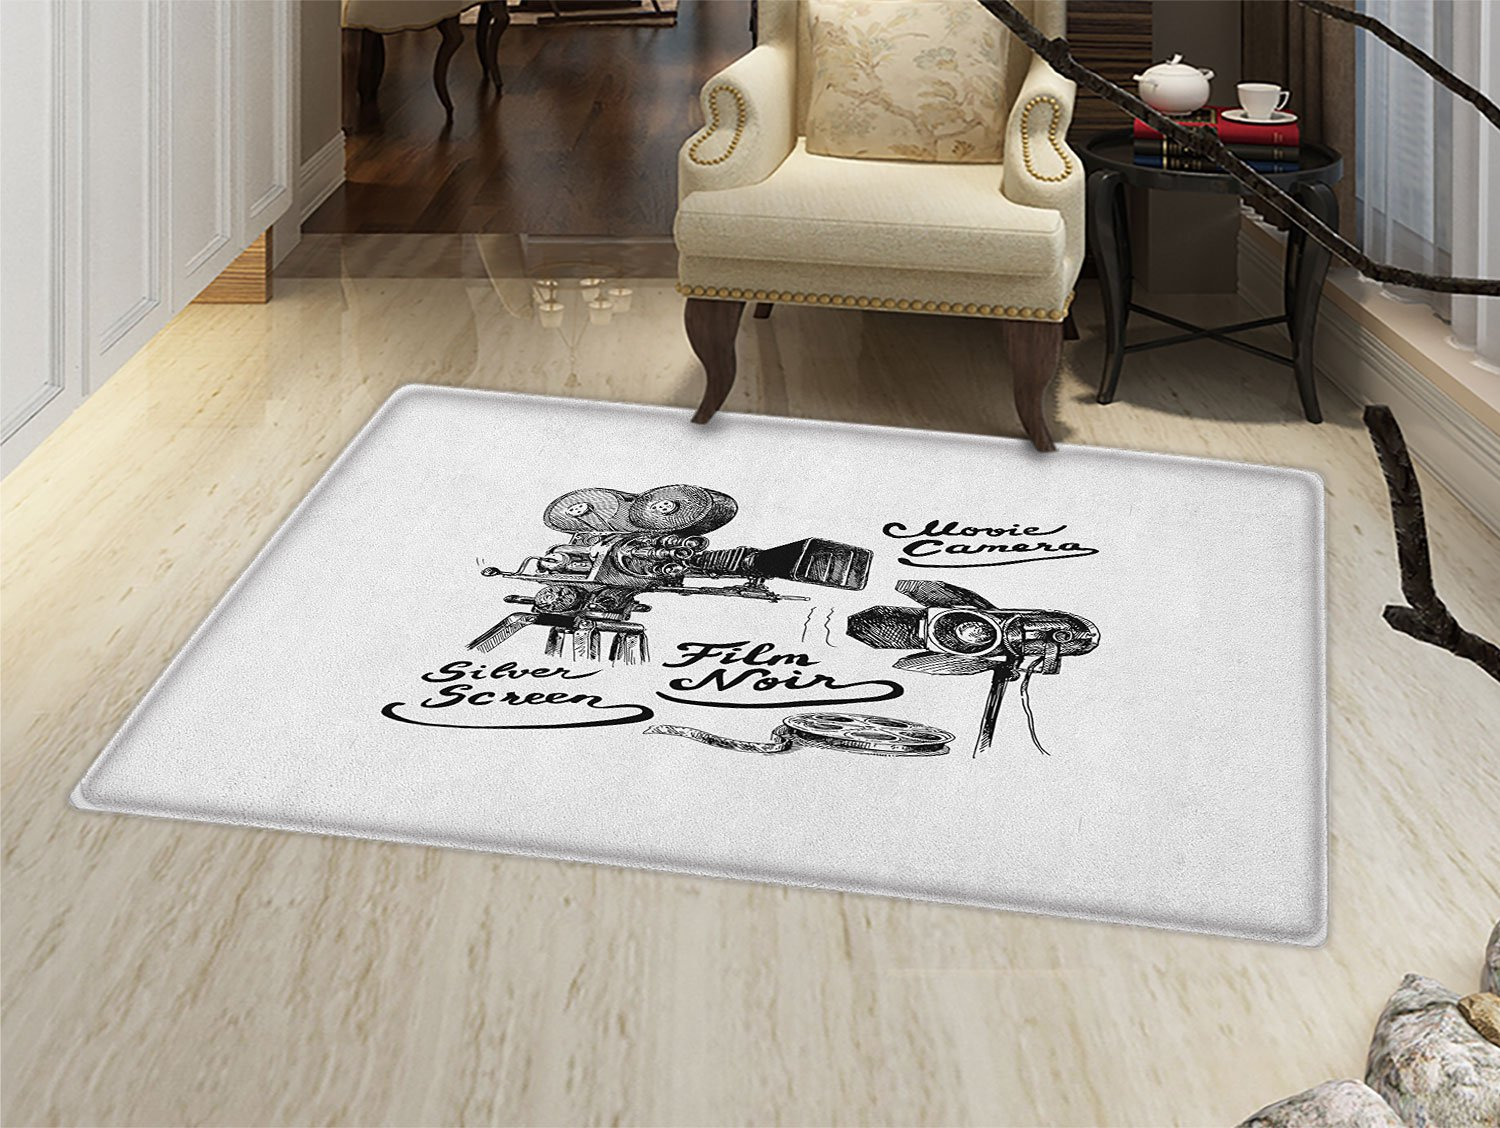 smallbeefly Movie Theater Floor Mat for kids Cinematography Themed Artwork with Old Camera and Equipment Silver Screen Door Mat Increase Black White